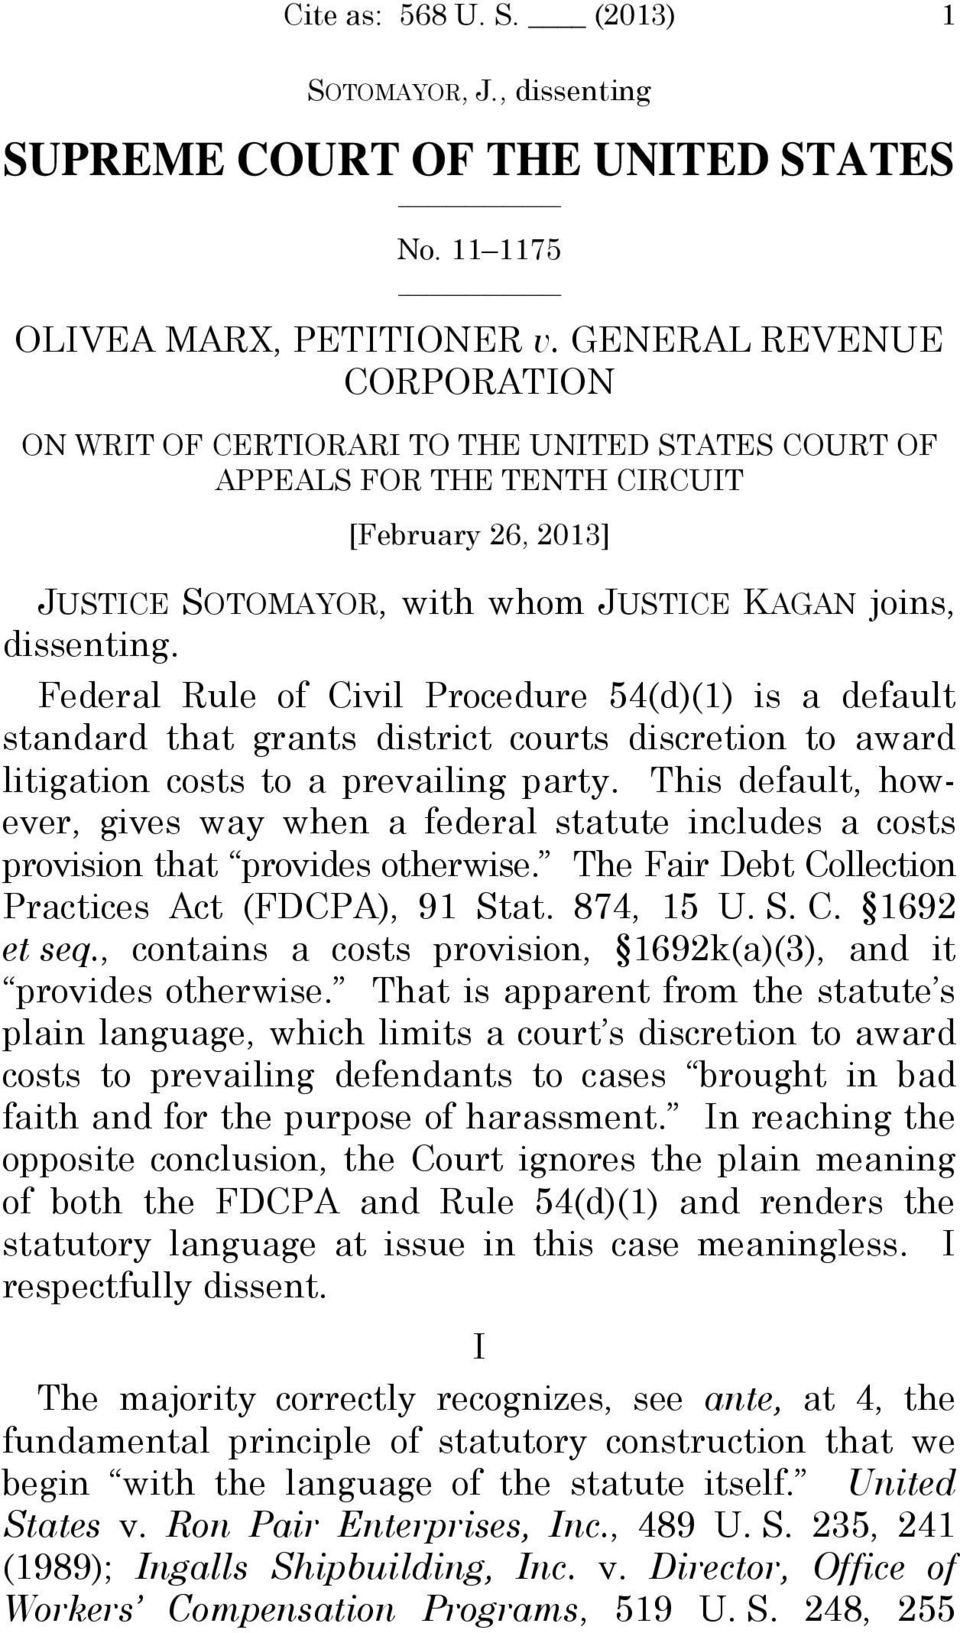 Federal Rule of Civil Procedure 54(d)(1) is a default standard that grants district courts discretion to award litigation costs to a prevailing party.